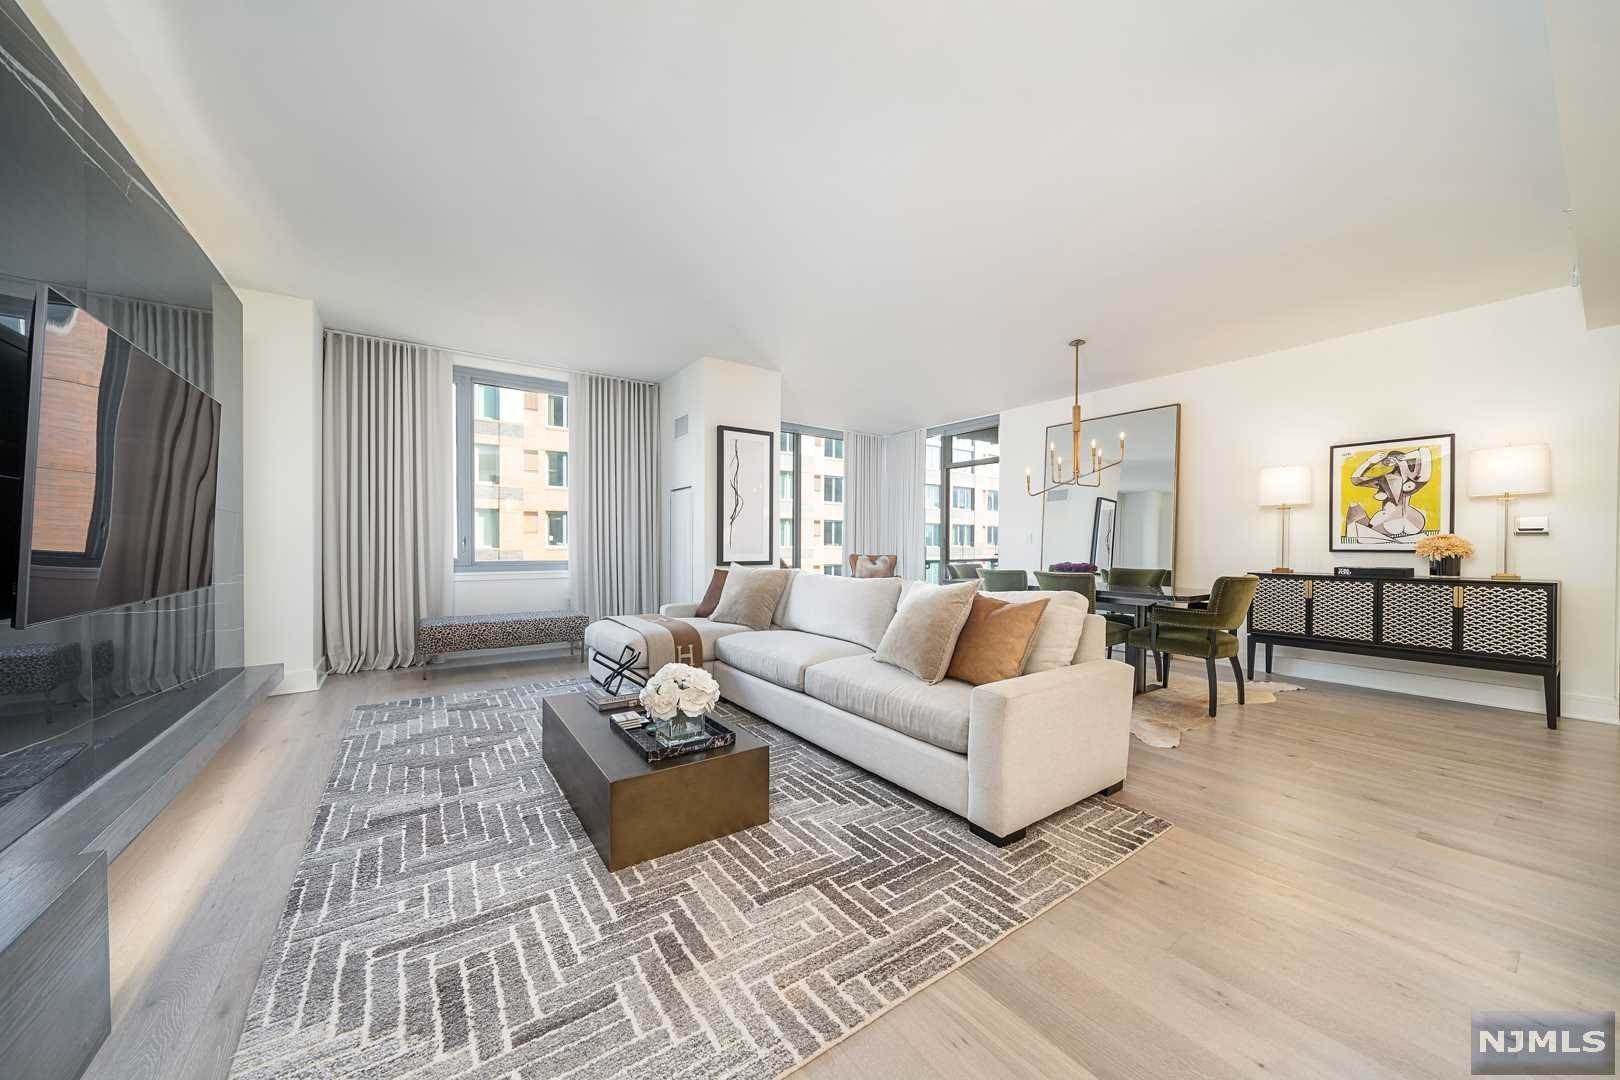 Condominium for Sale at 9 Ave At Port Imperial #903 West New York, New Jersey, 07093 United States